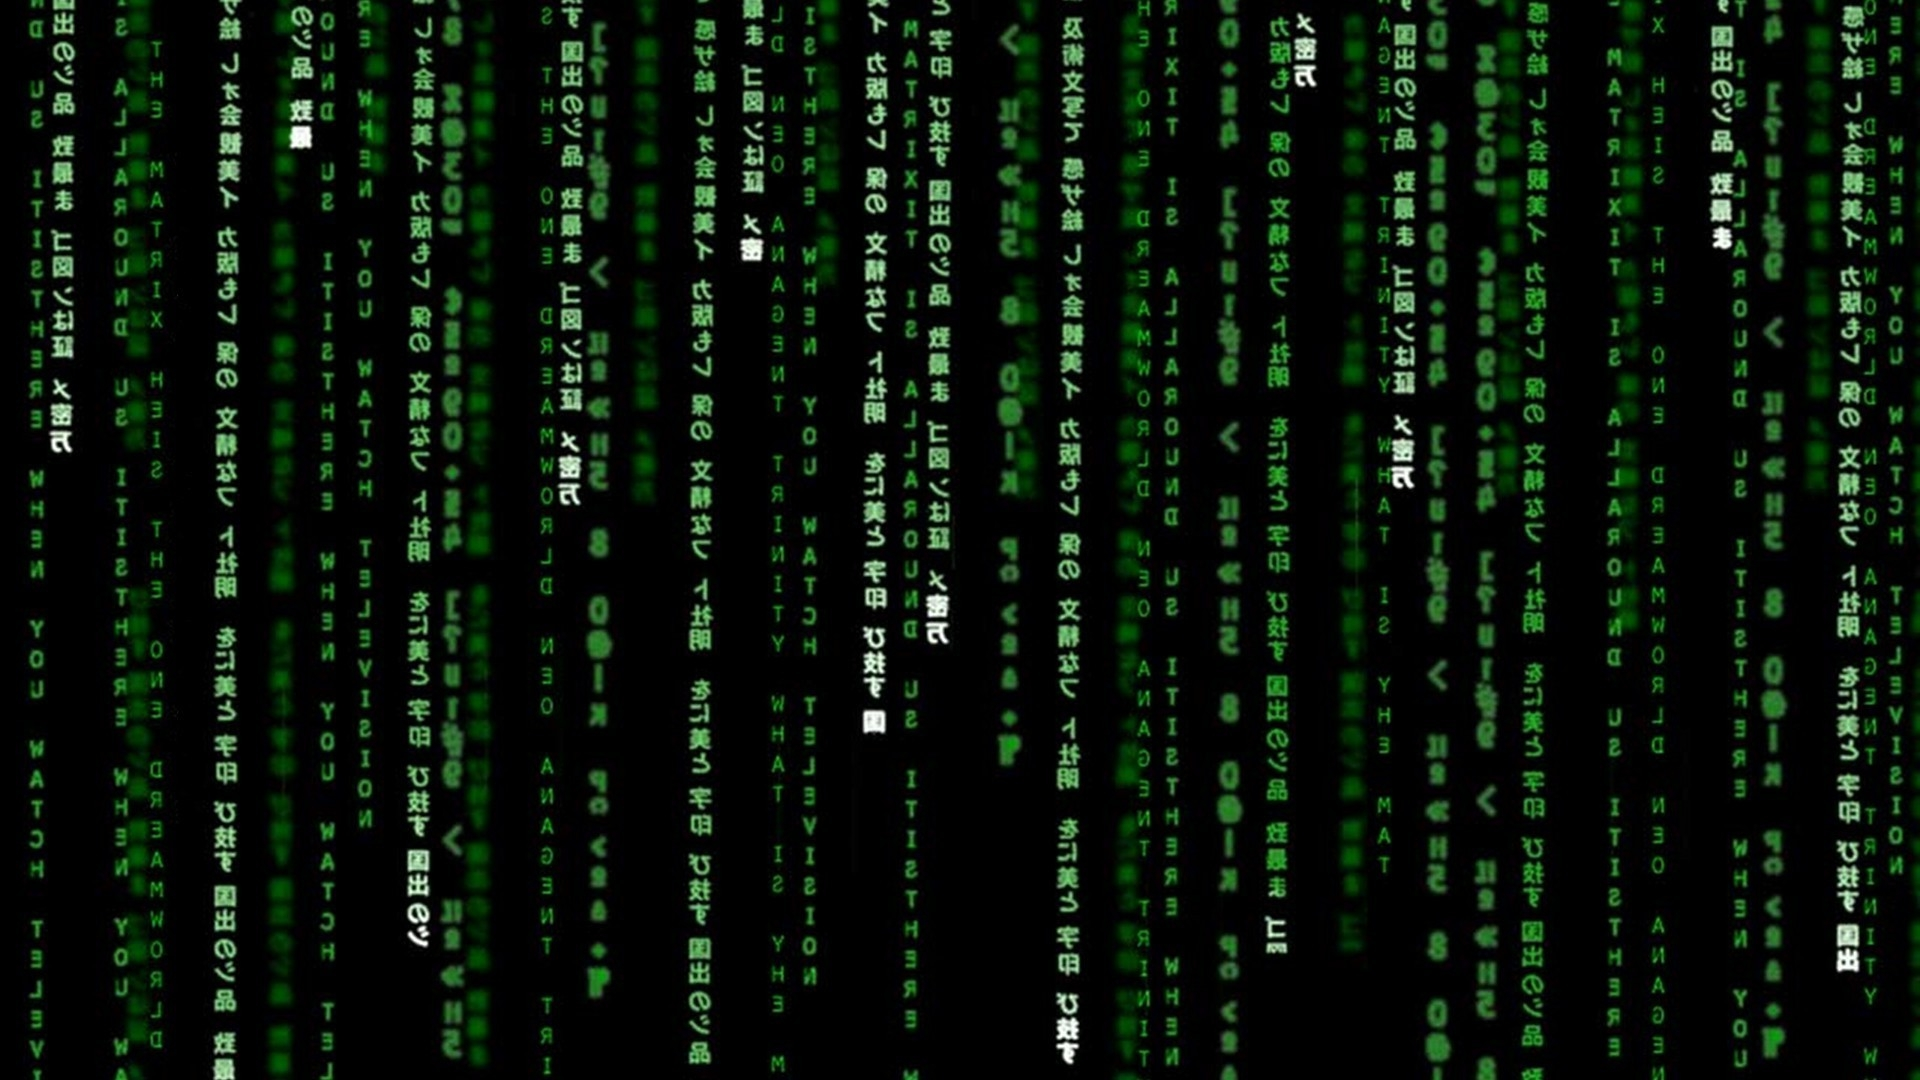 The Matrix Wallpaper - WallpaperSafari